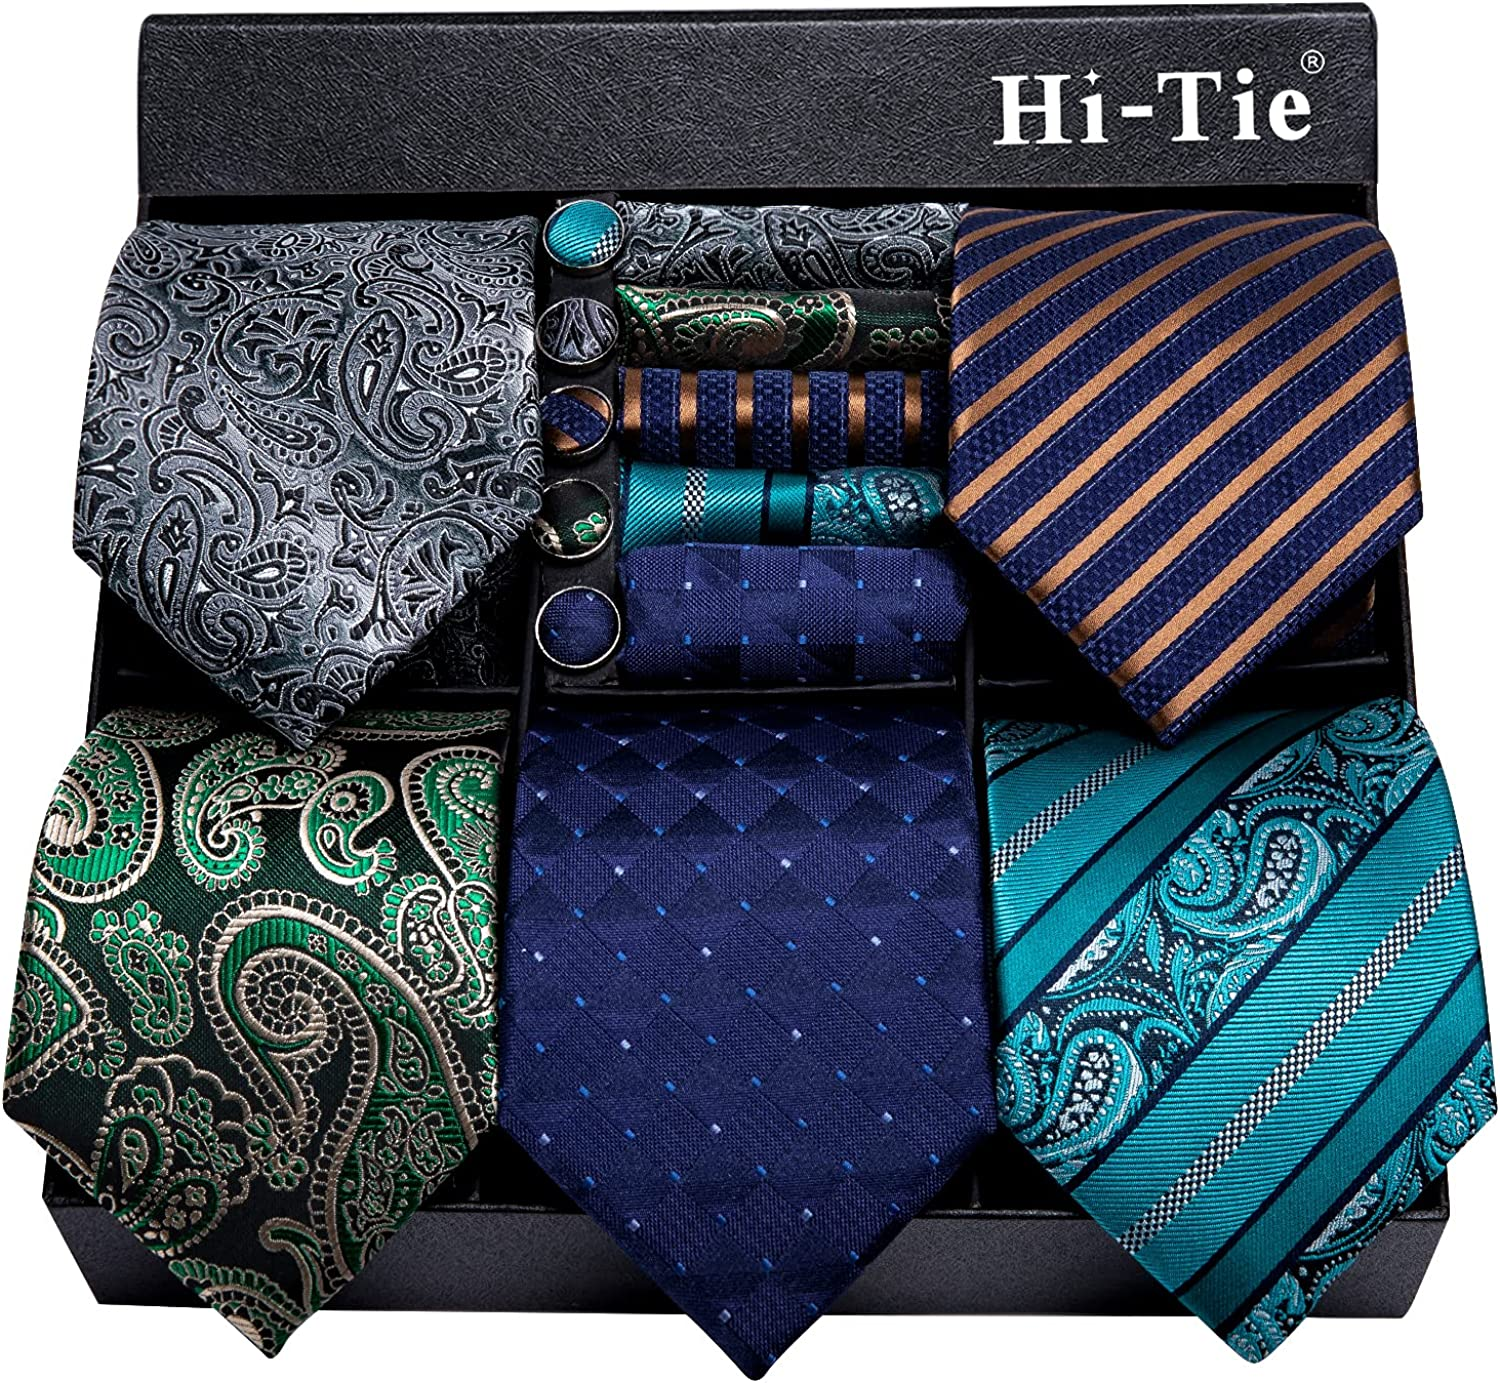 Hi-Tie 5 Pcs Mens Silk Tie Set in Gift Box Classic Necktie with Pocket Square and Cufflinks Set Collection